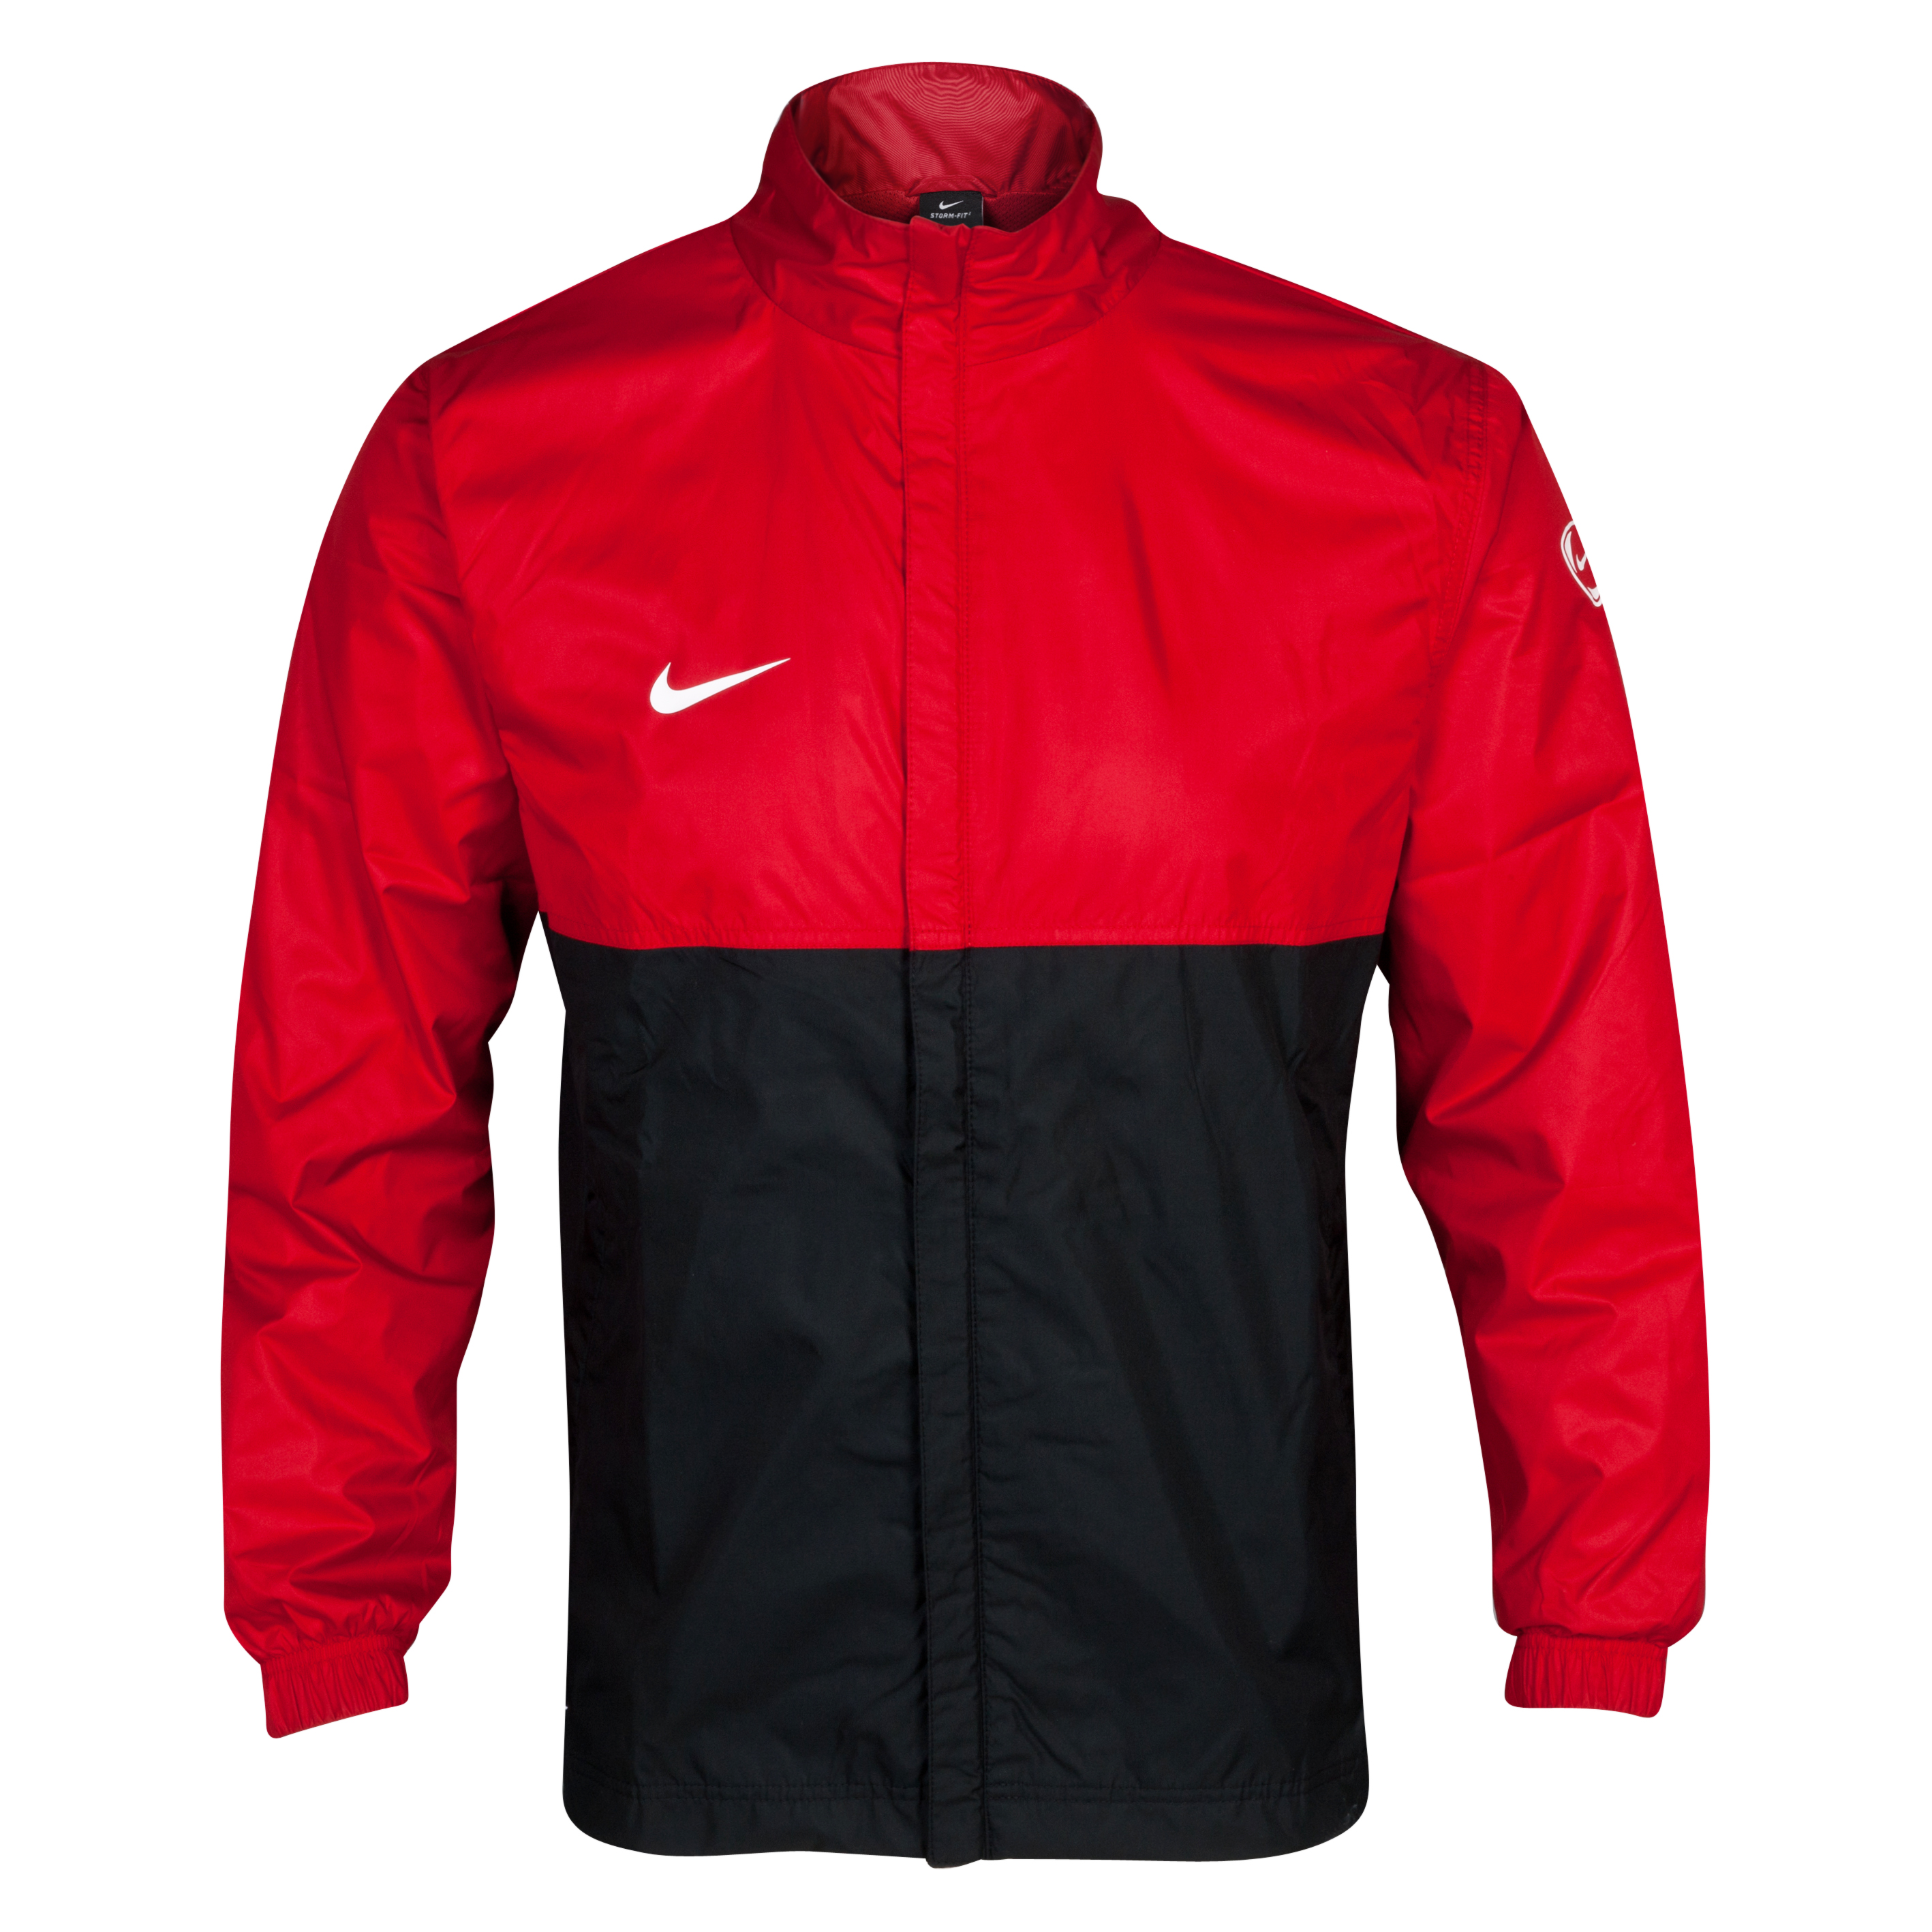 Nike Club Clima-Fit Rain Jacket - Varsity Red/Black/White